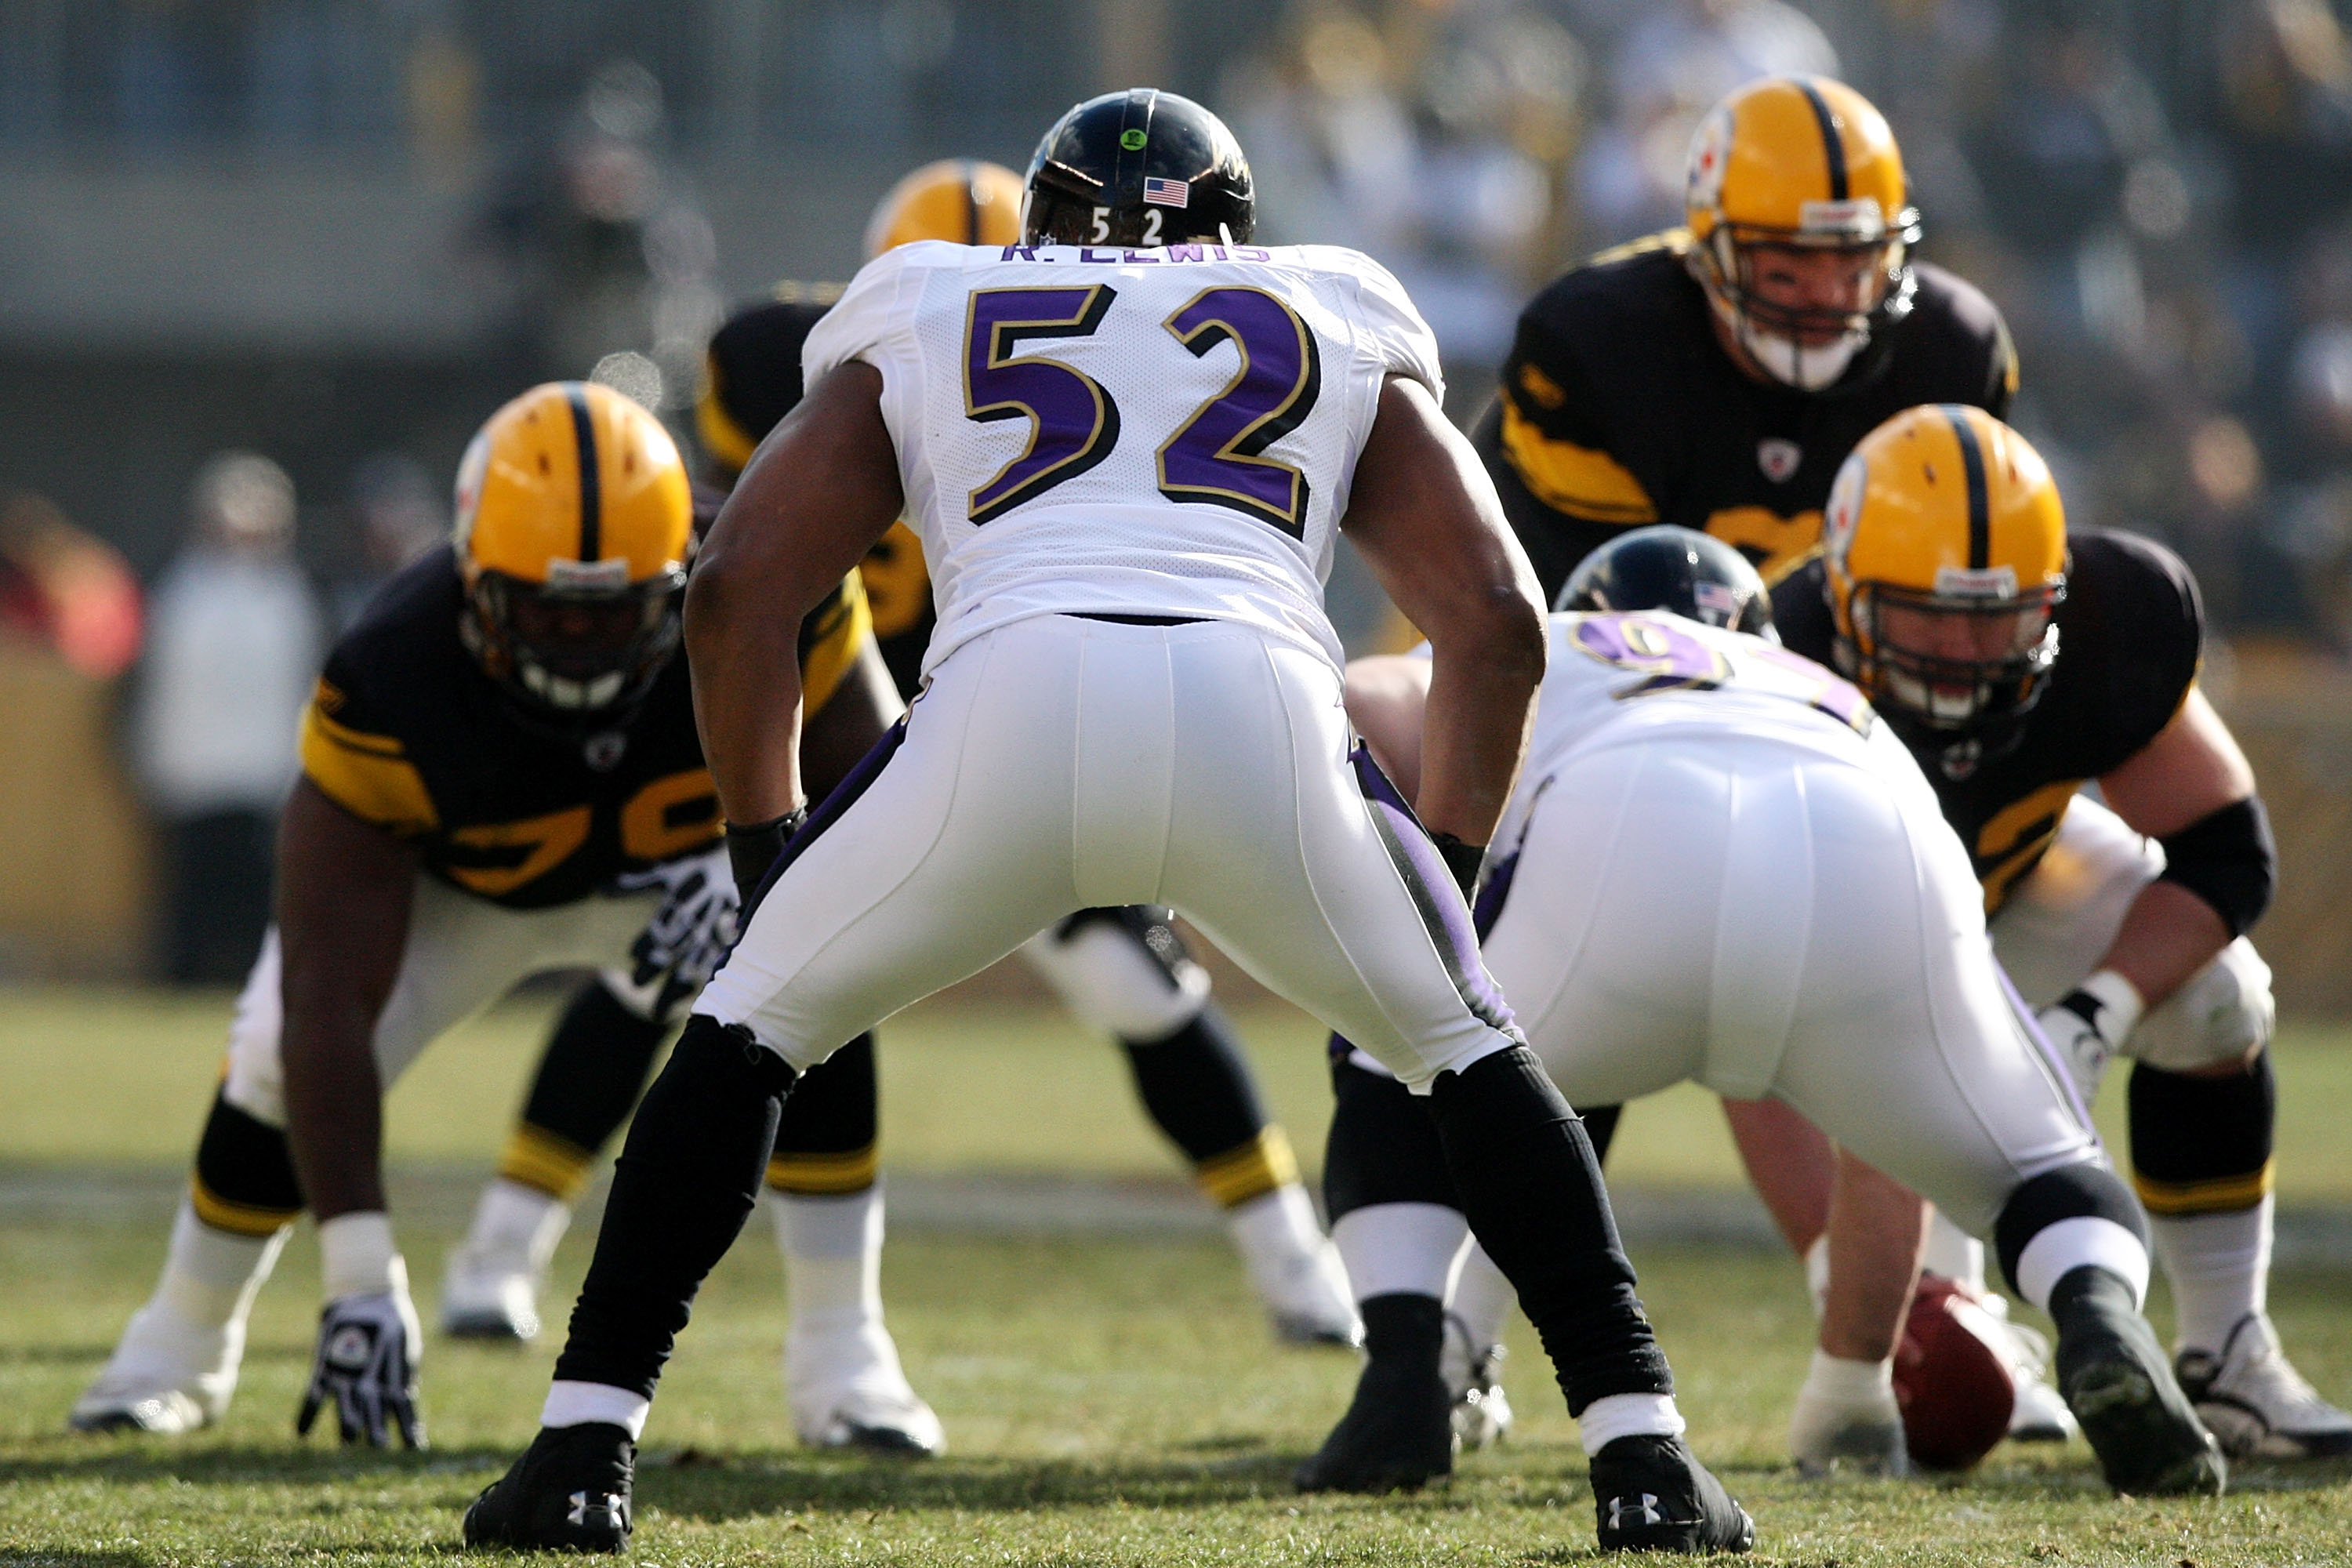 78bd6ec0e12 PITTSBURGH - DECEMBER 27  Ray Lewis  52 of the Baltimore Ravens prepares for  the